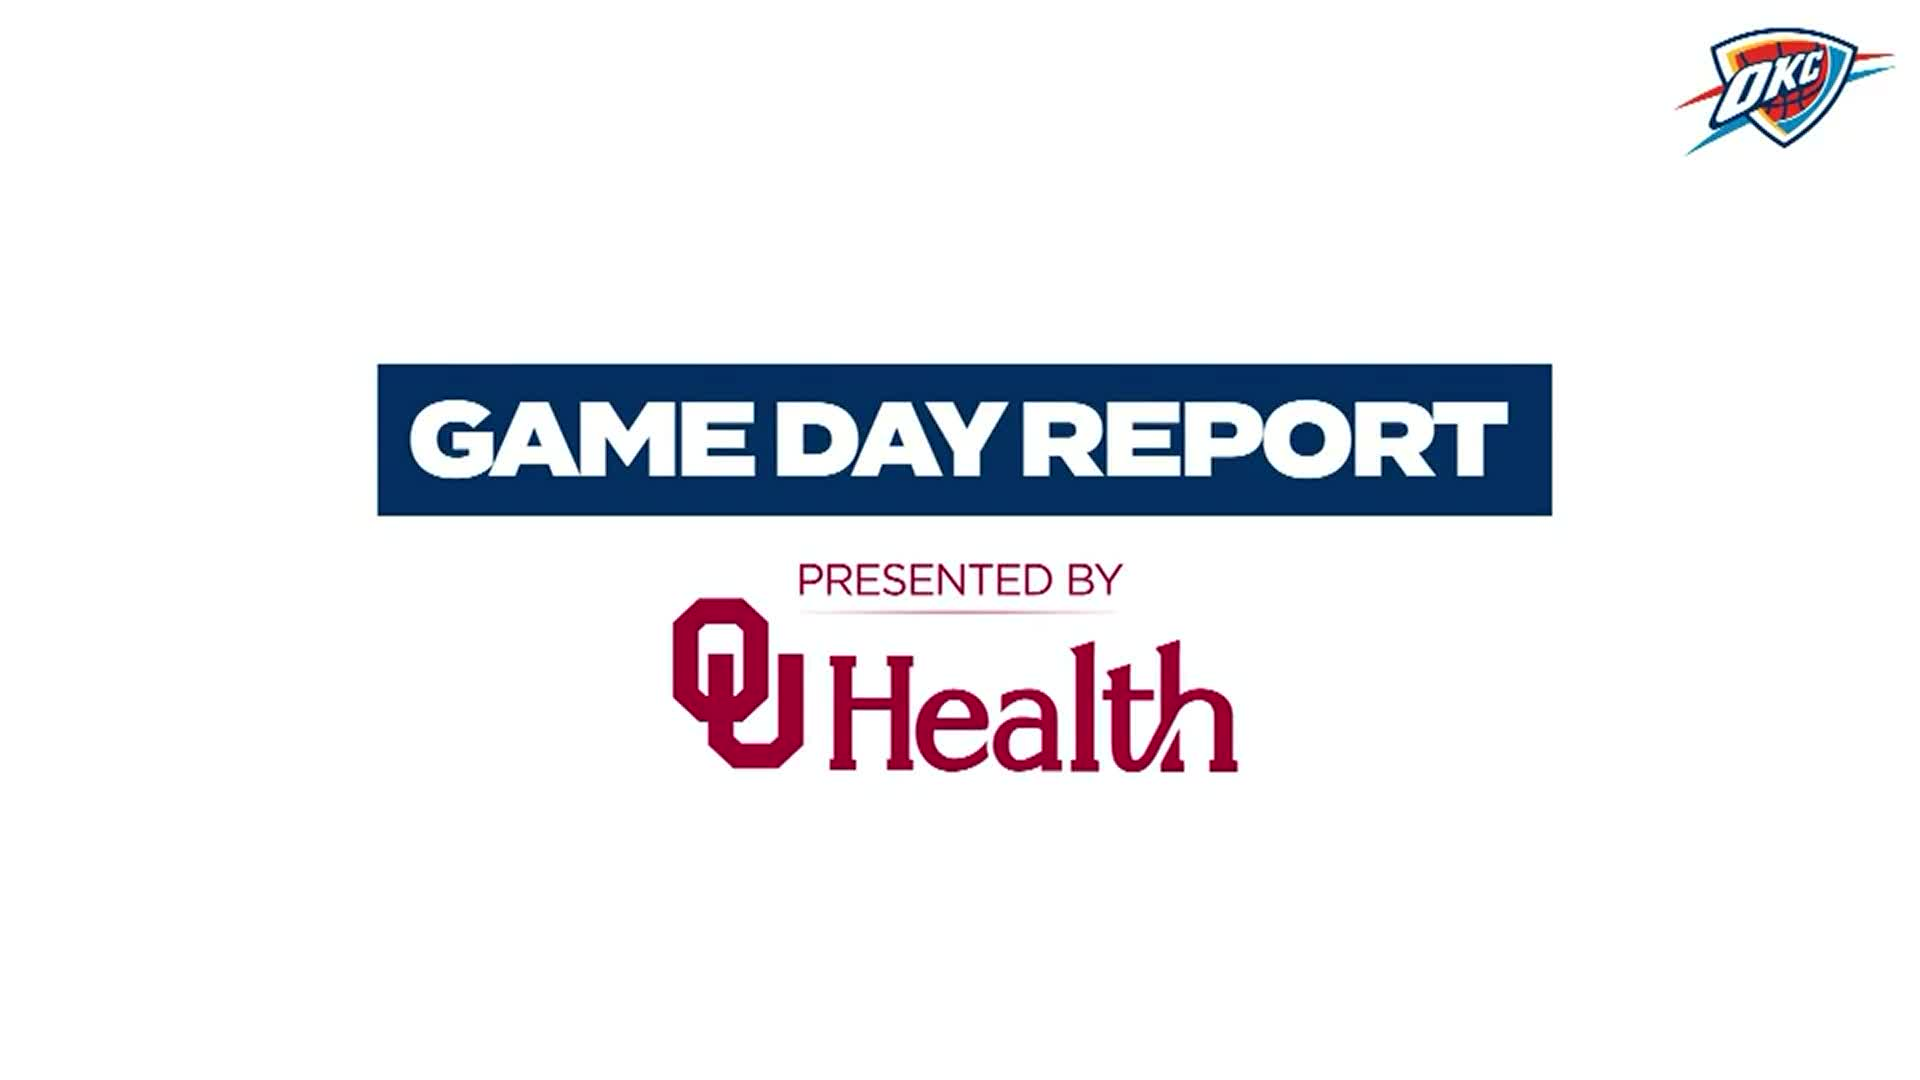 Game Day Report - 4/21 at Indiana